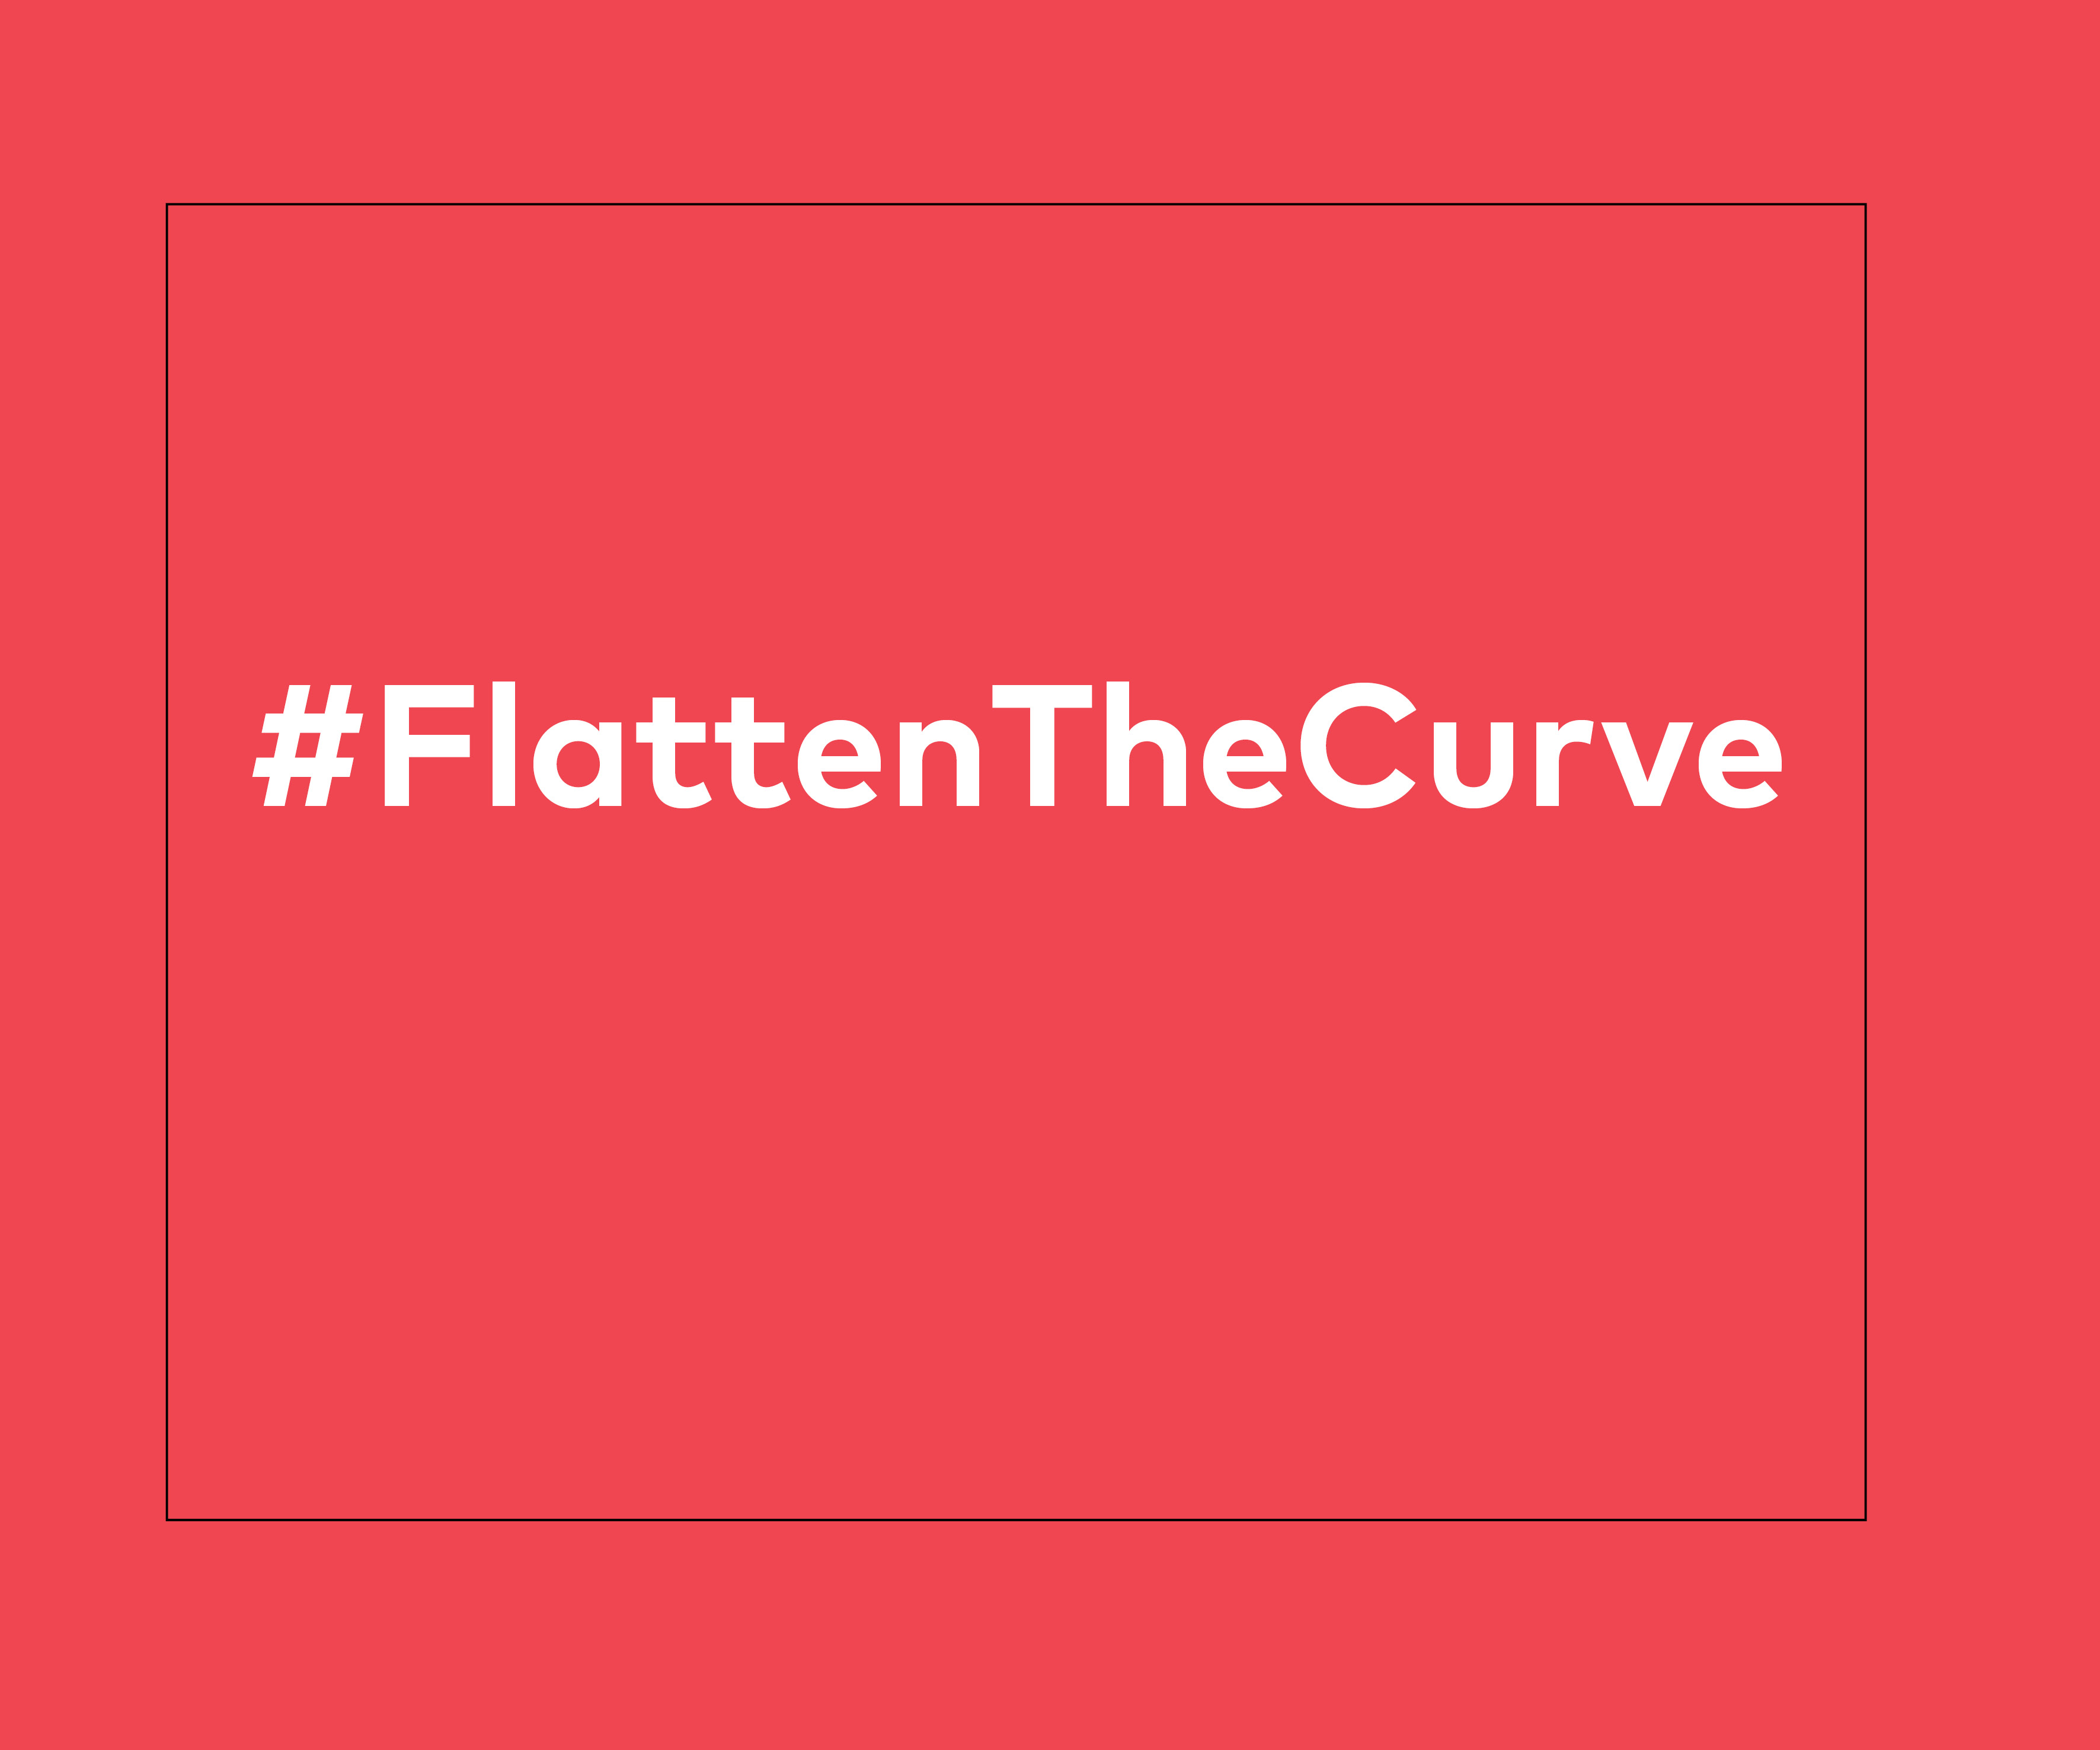 Red square with text: #Faltten the Curve